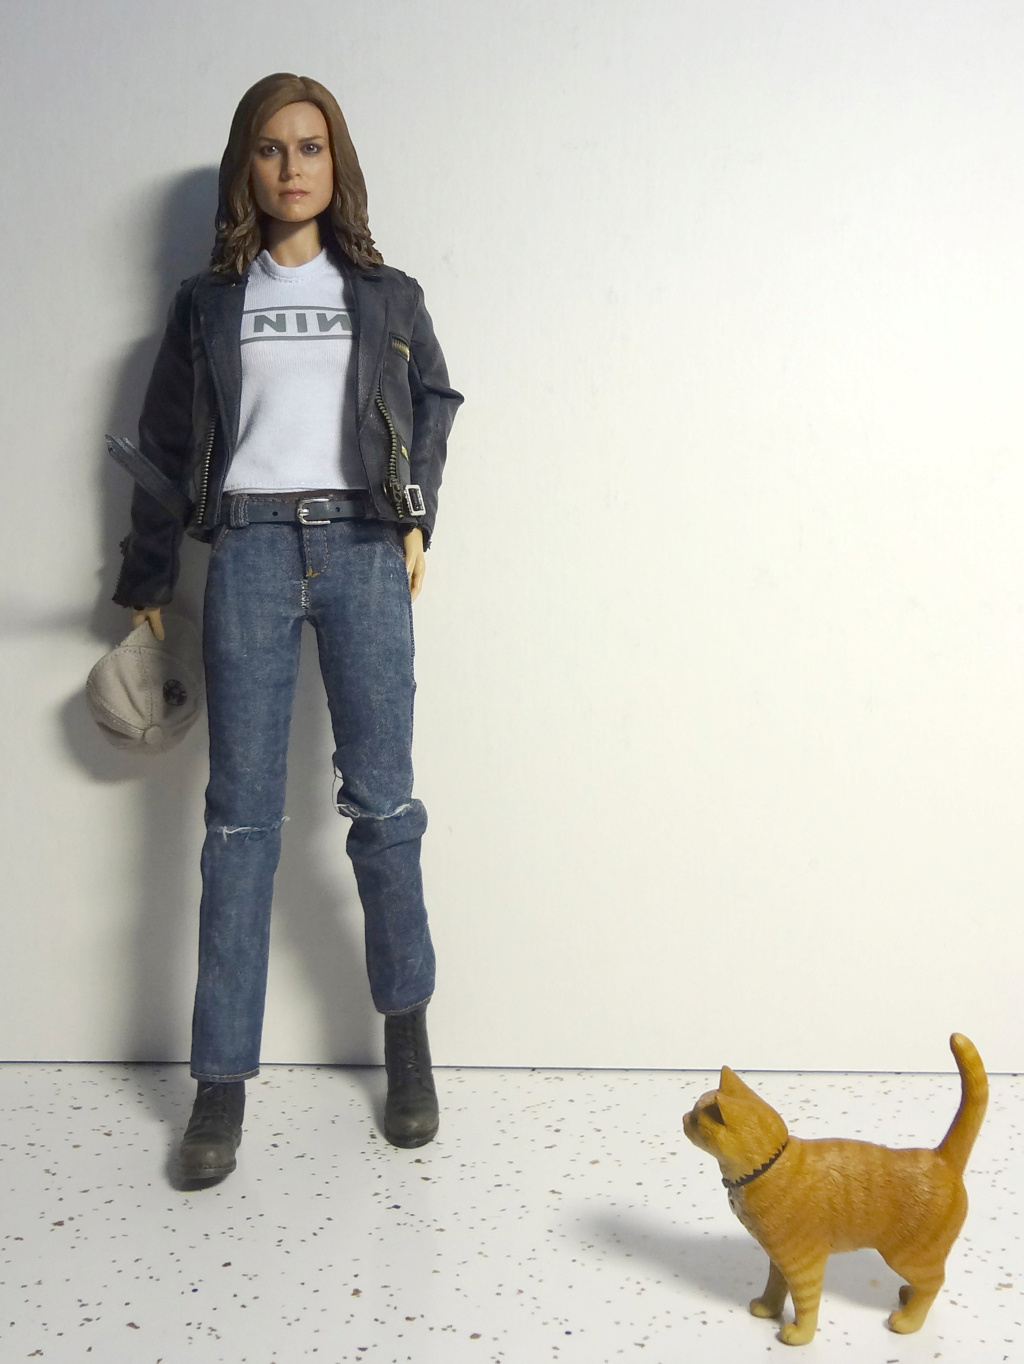 SWToys - NEW PRODUCT: Swtoys FS028 1/6 Scale Danvers figure Dsc00922